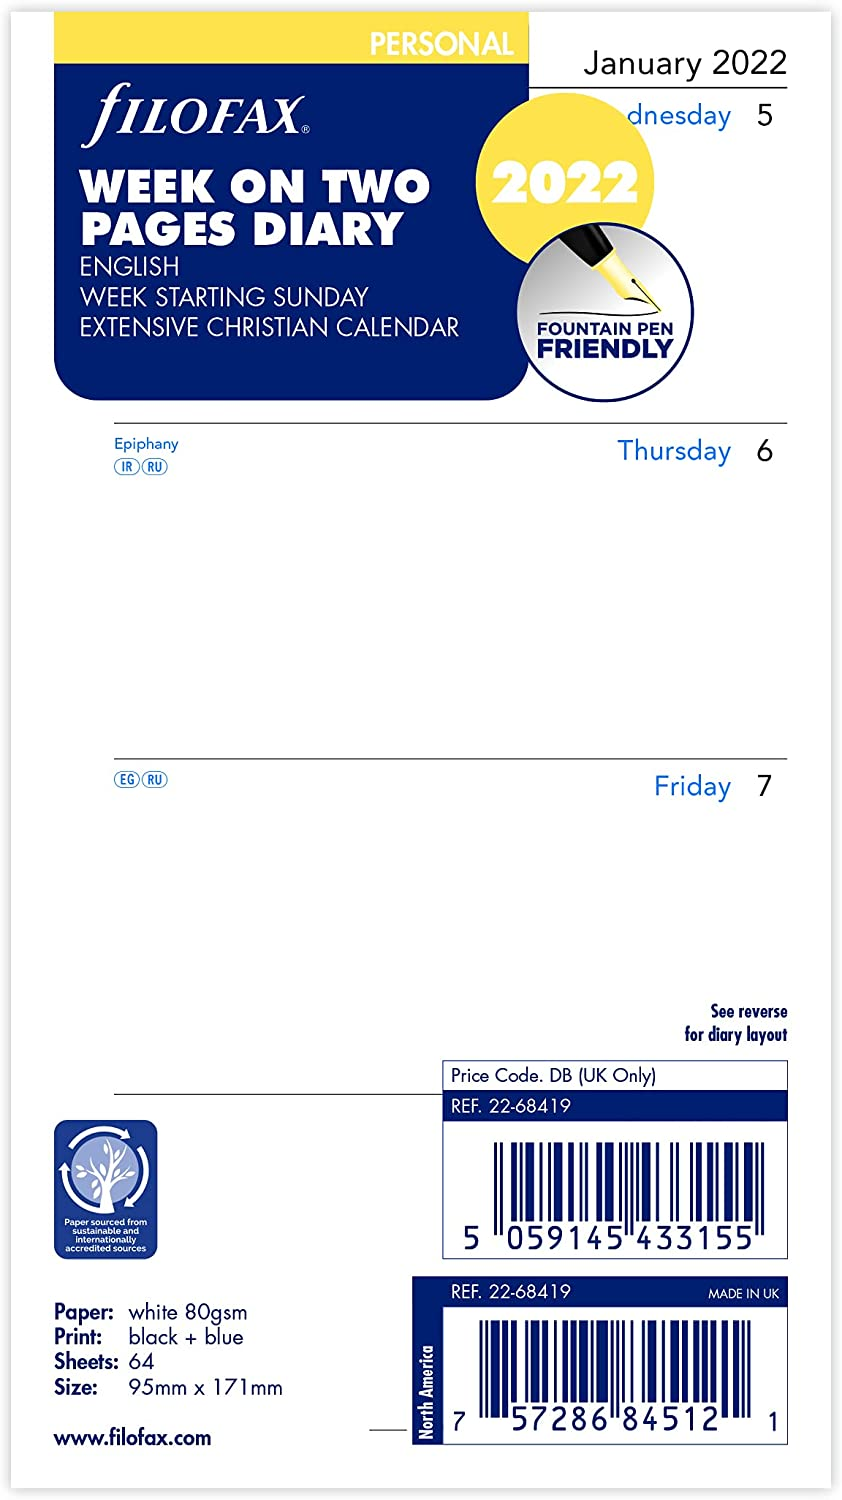 Filofax Personal Week on Two Pages Start 2022 New Free Shipping Dia Sunday New color English